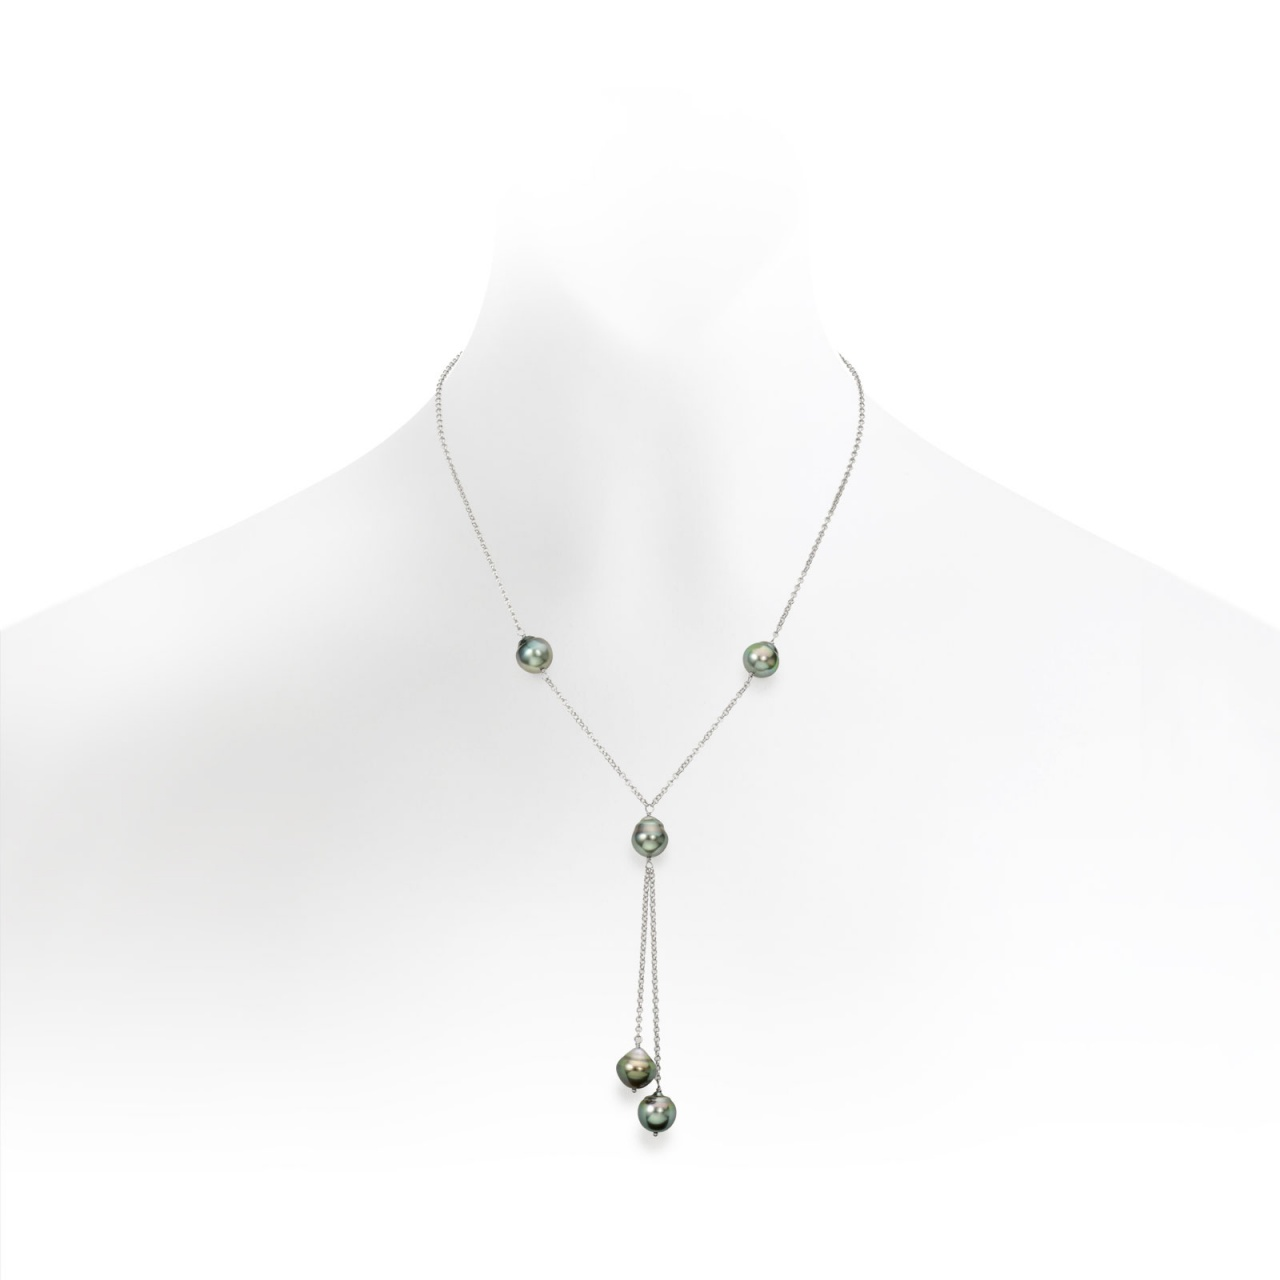 Baroque Tahitian Pearl Lariat Necklace with Silver Chain-TNGBSS0113-1